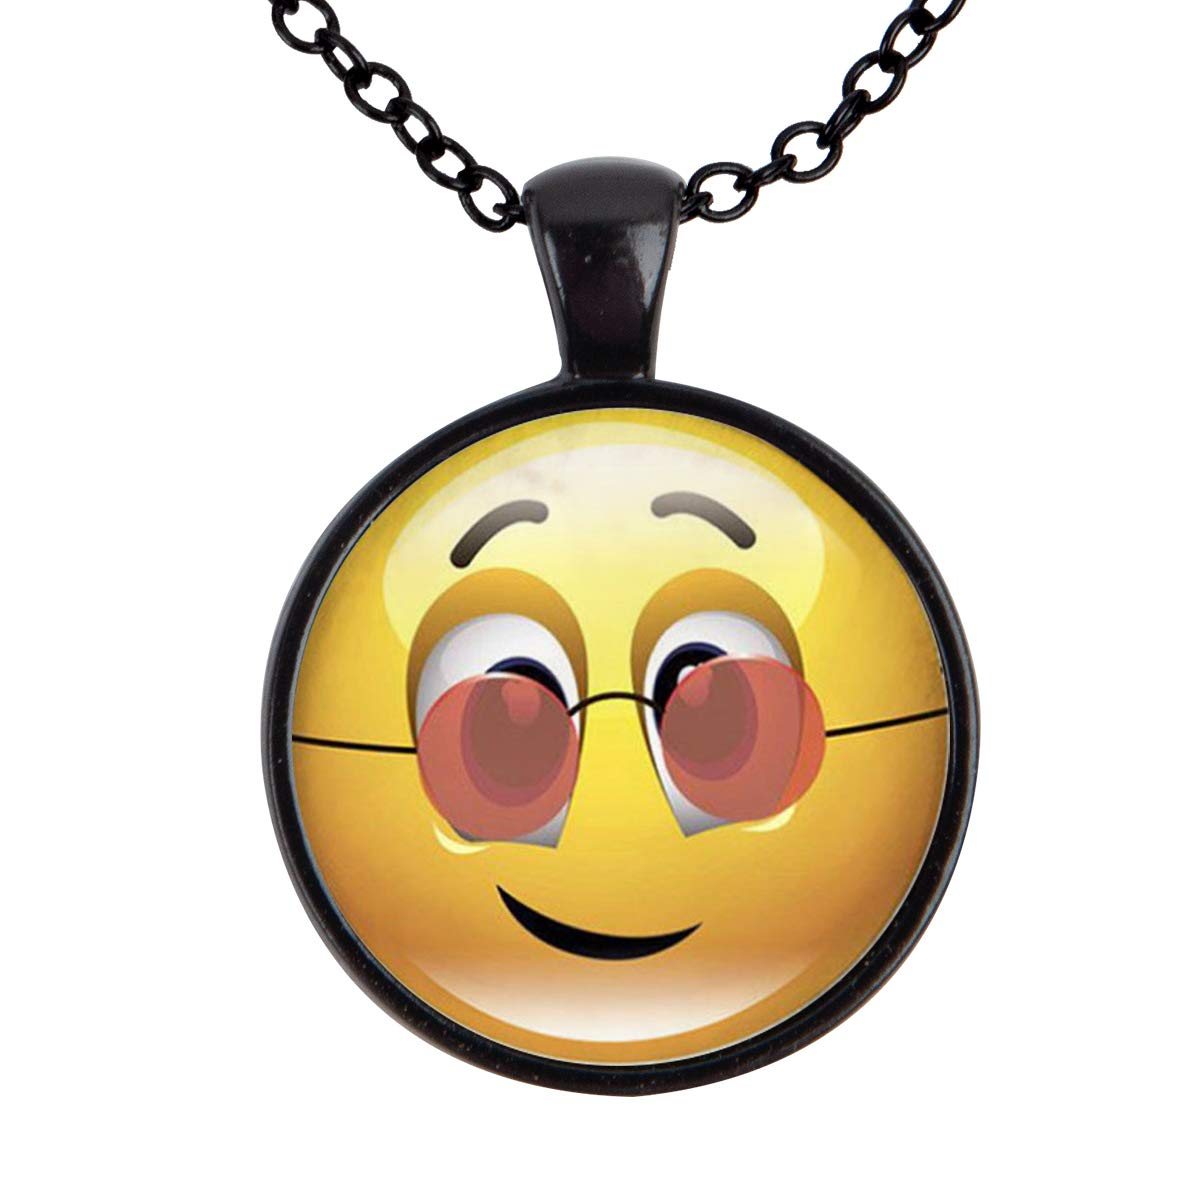 Family Decor Emoji Face Naughty Pendant Necklace Cabochon Glass Vintage Bronze Chain Necklace Jewelry Handmade